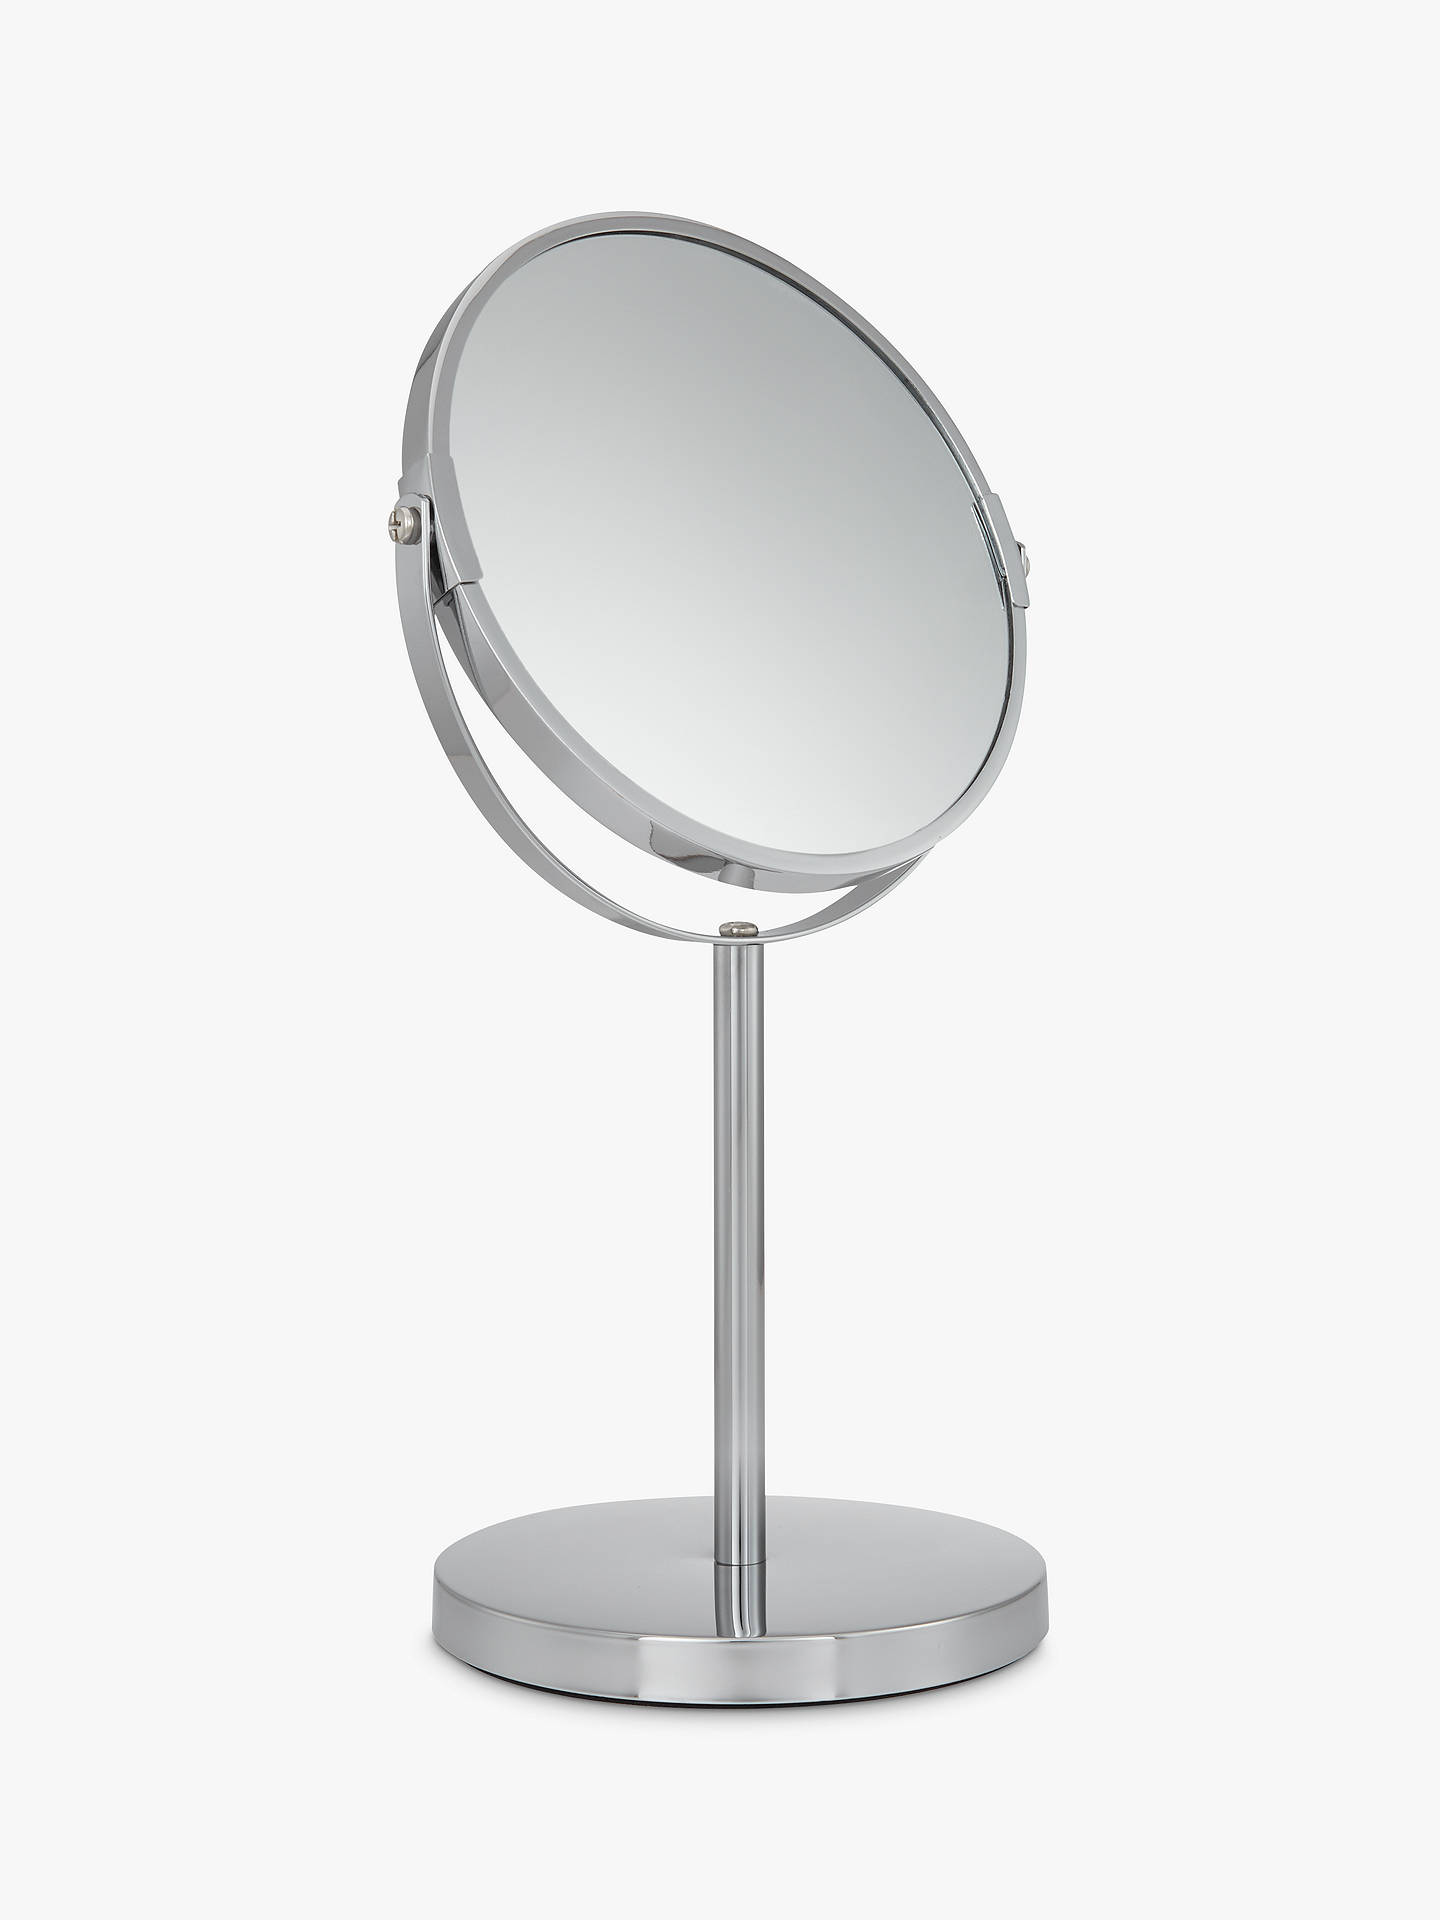 Buy John Lewis The Basics Pedestal Mirror Online at johnlewis.com